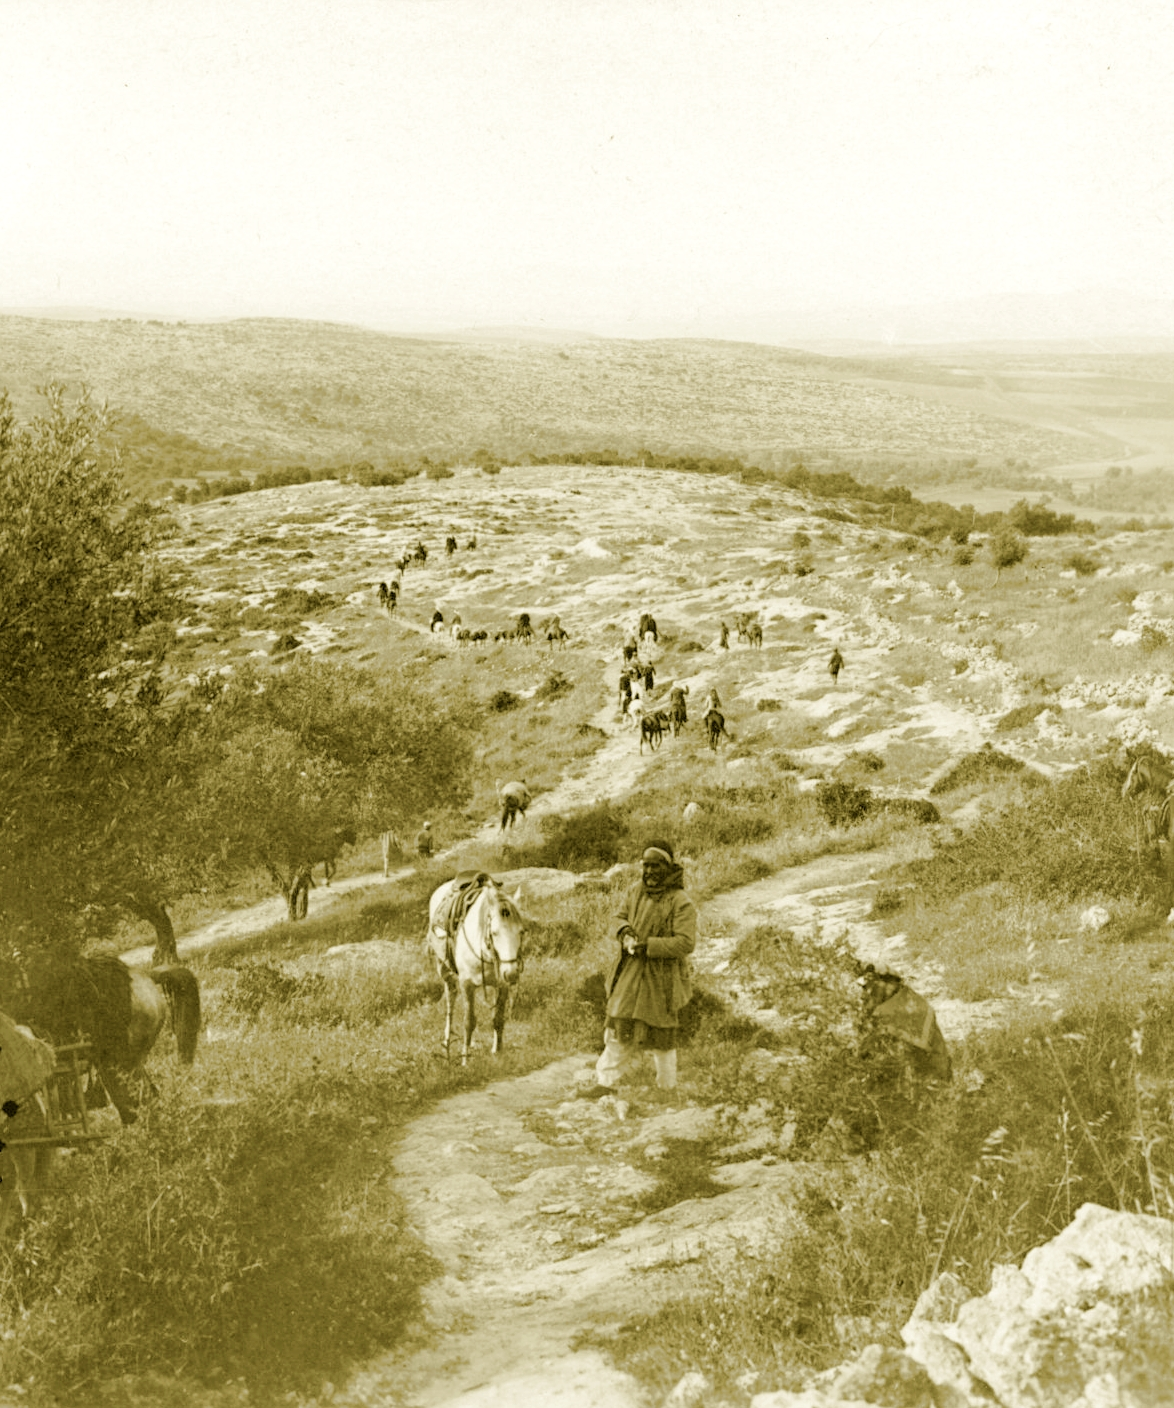 Nablus - نابلس : NABLUS - Late 19th, early 20th c. 117 - Arab shephards and horsemen on mountain track leading to Jenin from northern environs of Nablus